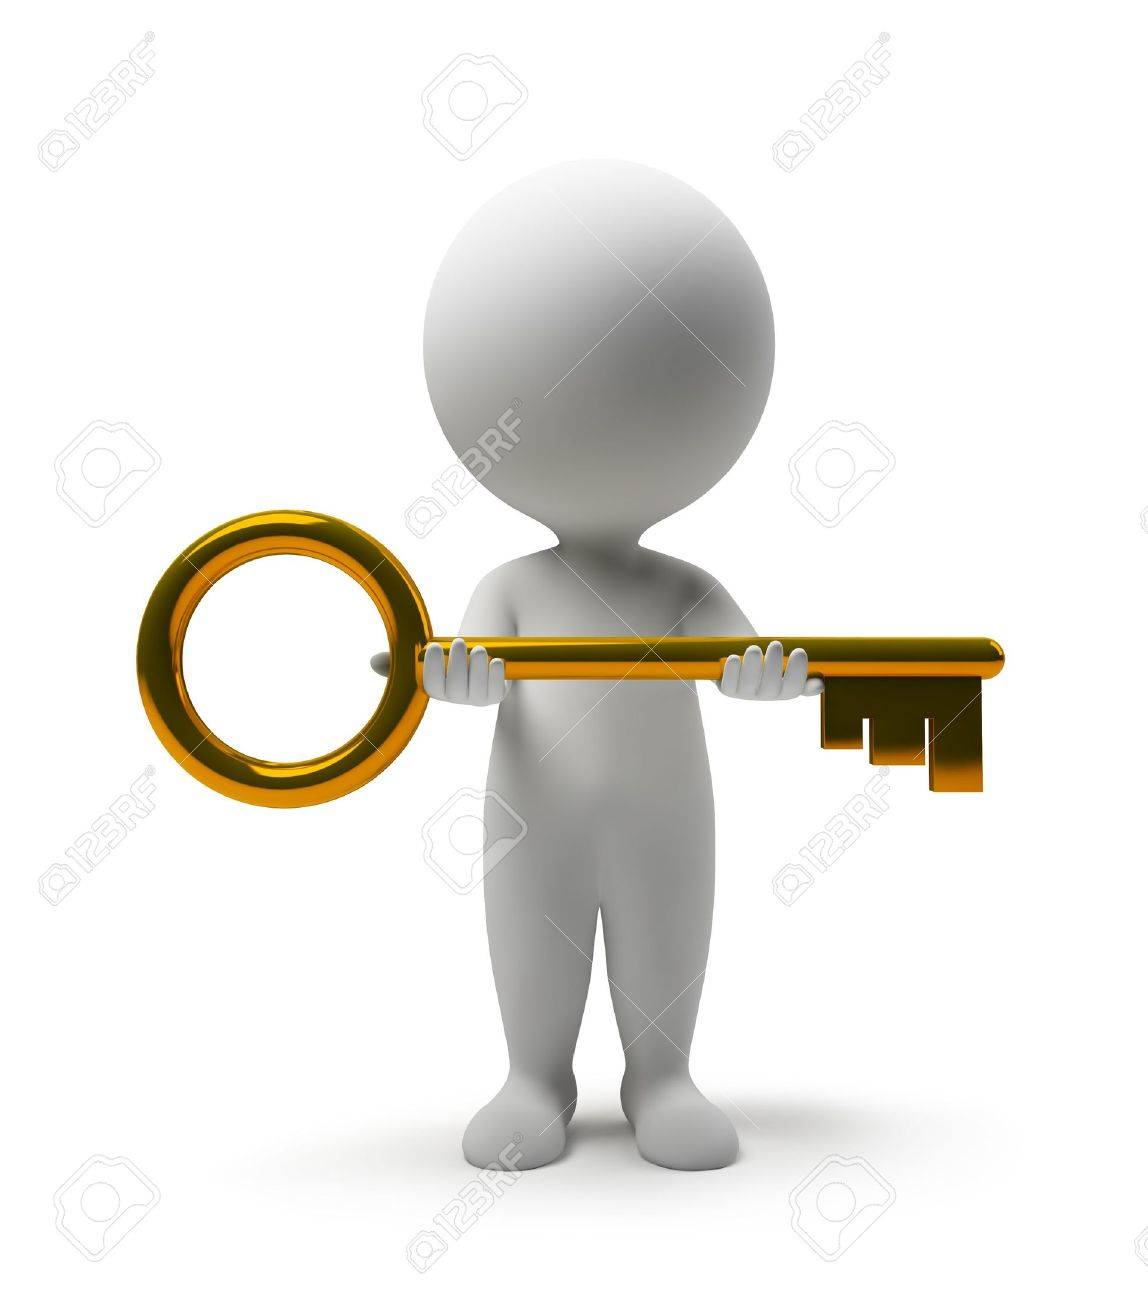 With golden key 3d rendering plan concept with golden key 3d rendering - Gold Key 3d Small People With A Gold Key In Hands 3d Image